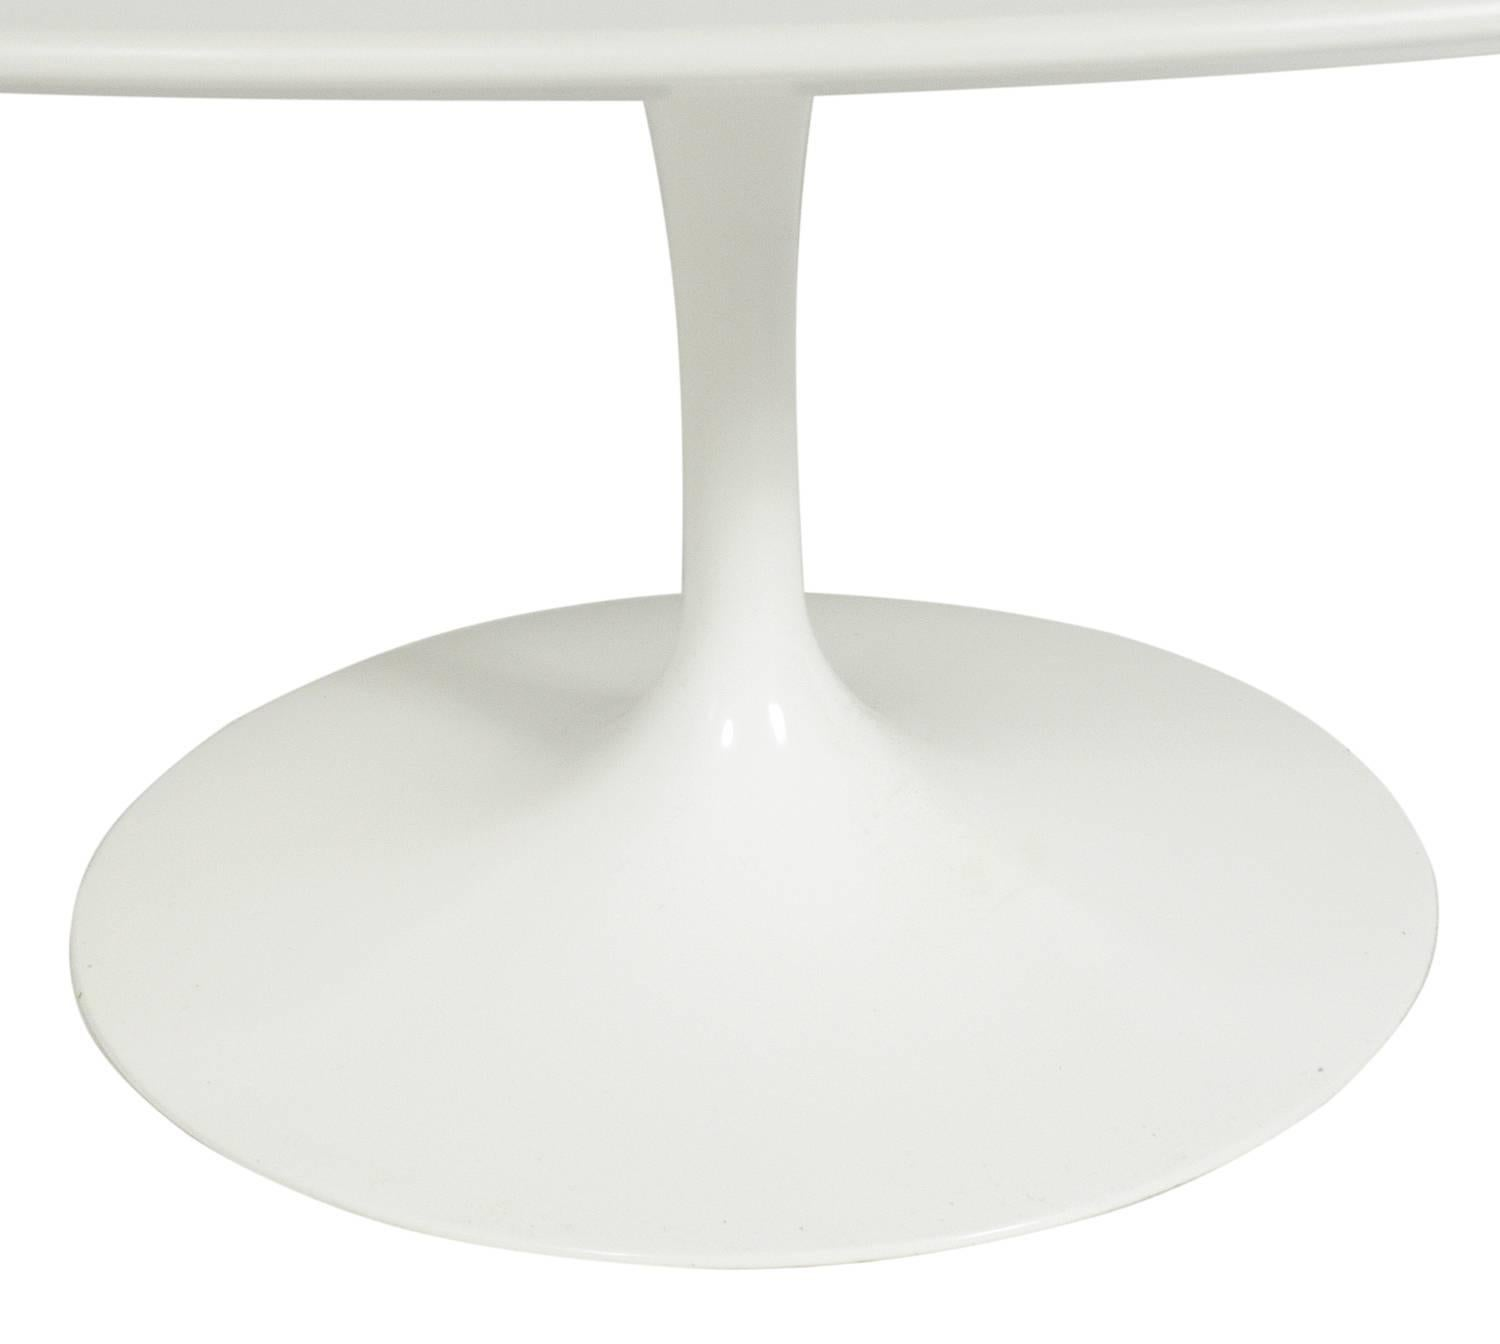 Oval Tulip Coffee Table By Eero Saarinen For Knoll For Sale At 1stdibs